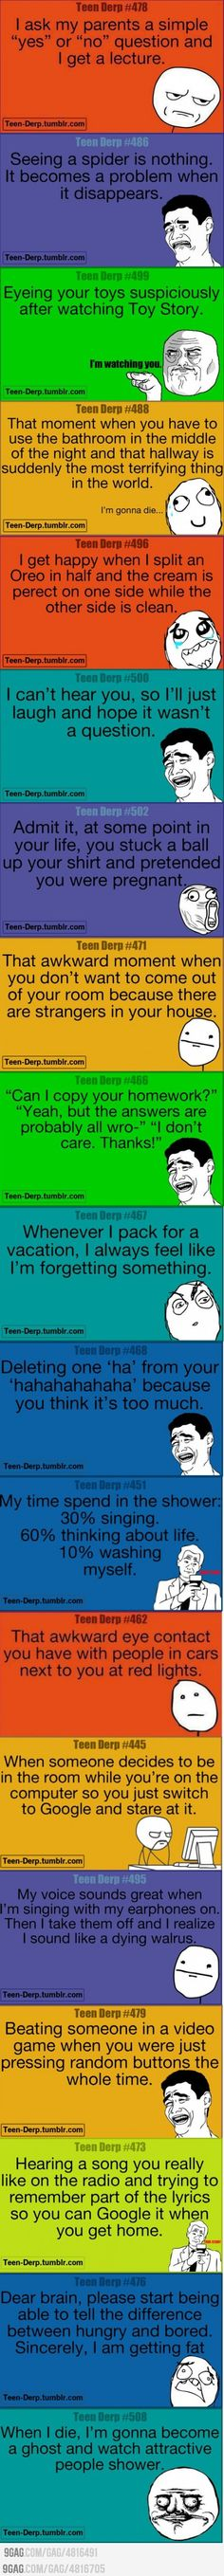 so these arent just teen derp they are relate able post too lol except the last one awkward